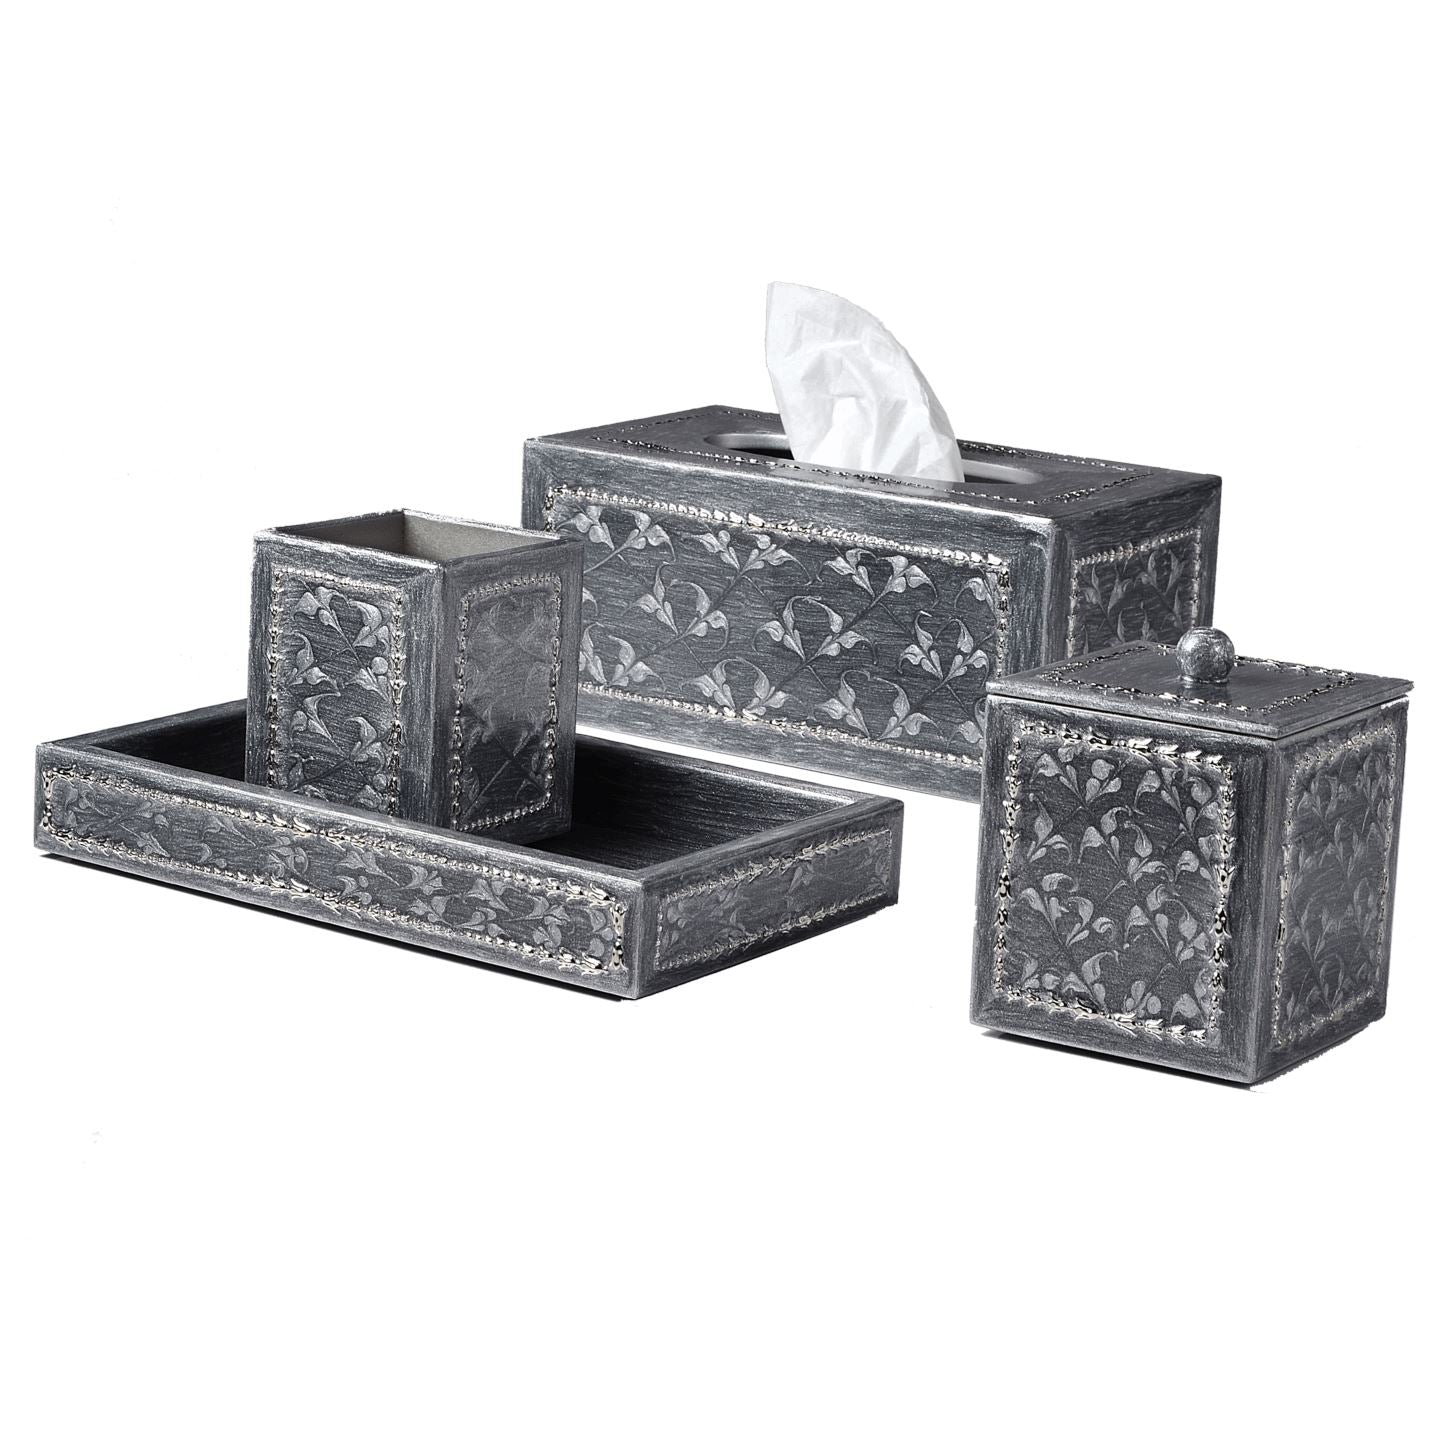 Fiona Platinum Bath Accessories by Mike + Ally